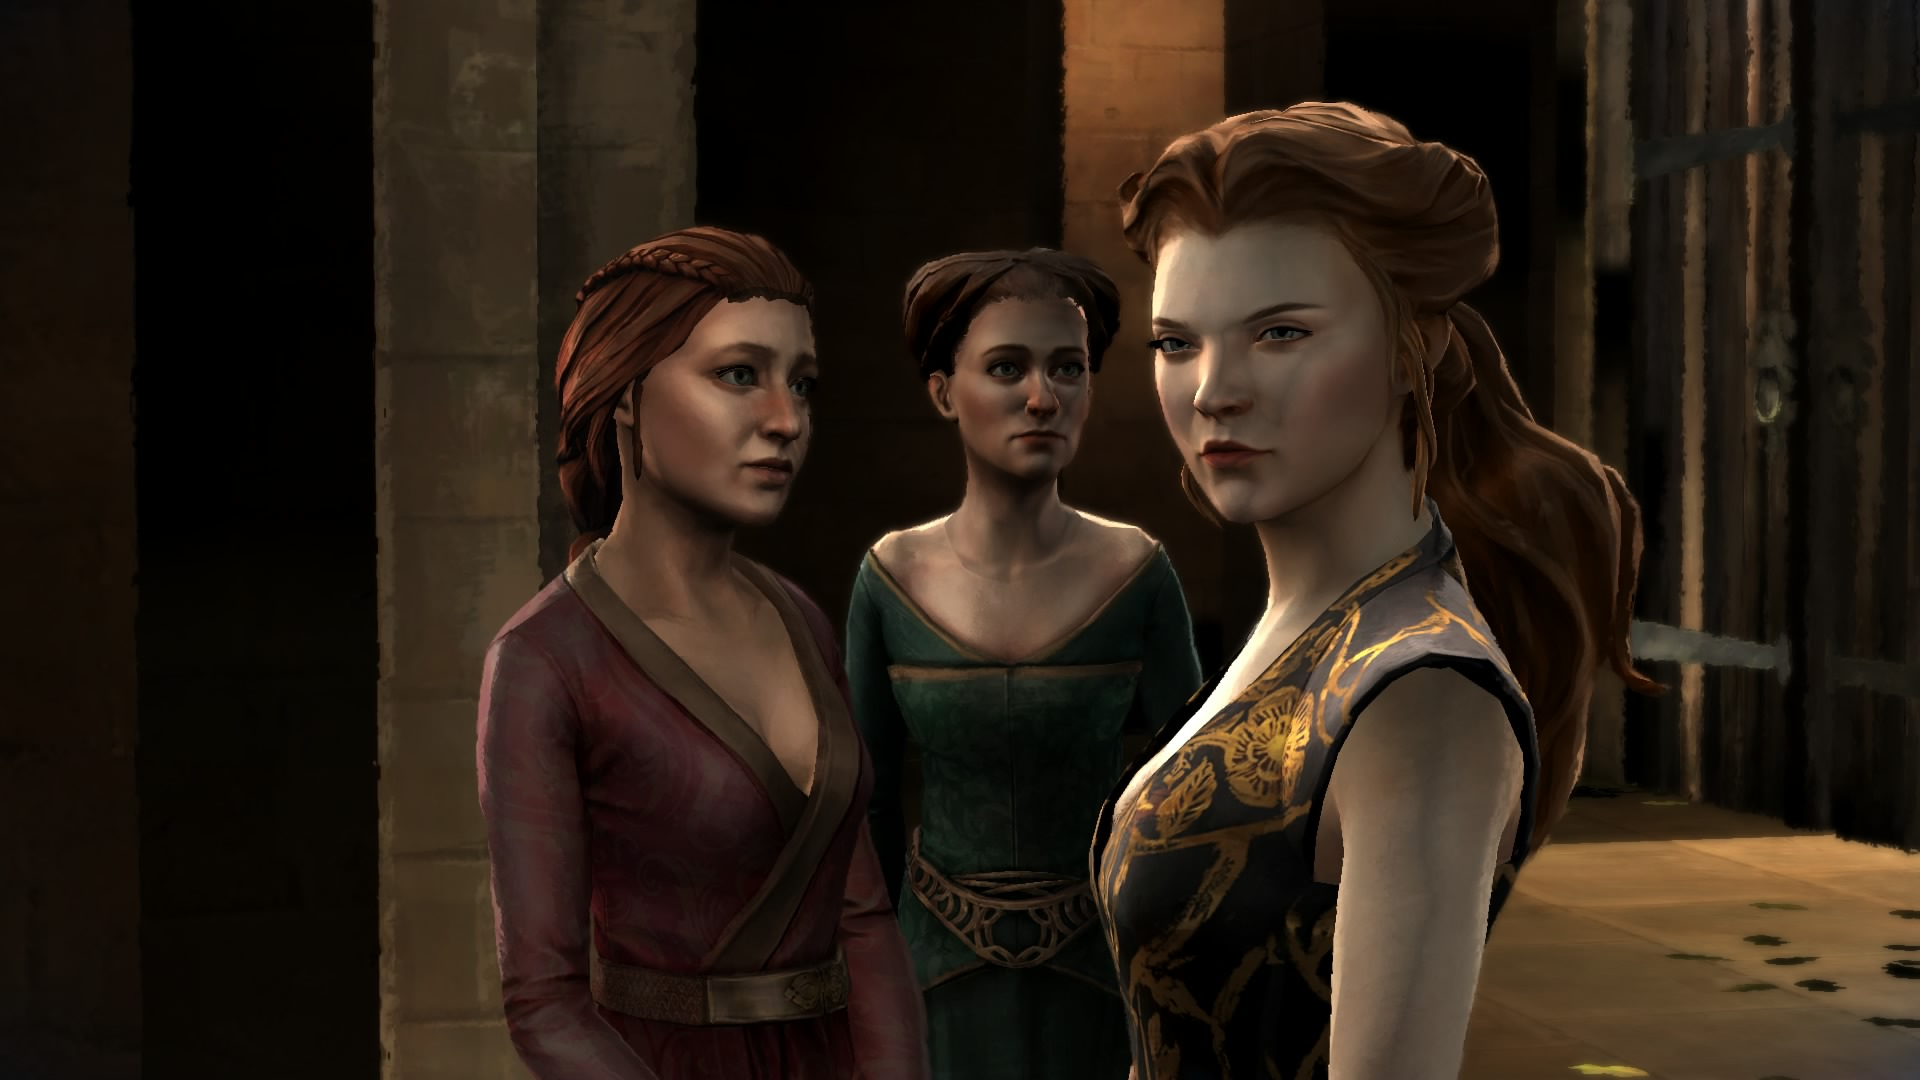 Game of Thrones: Episode 5 - A Nest of Vipers Screenshots